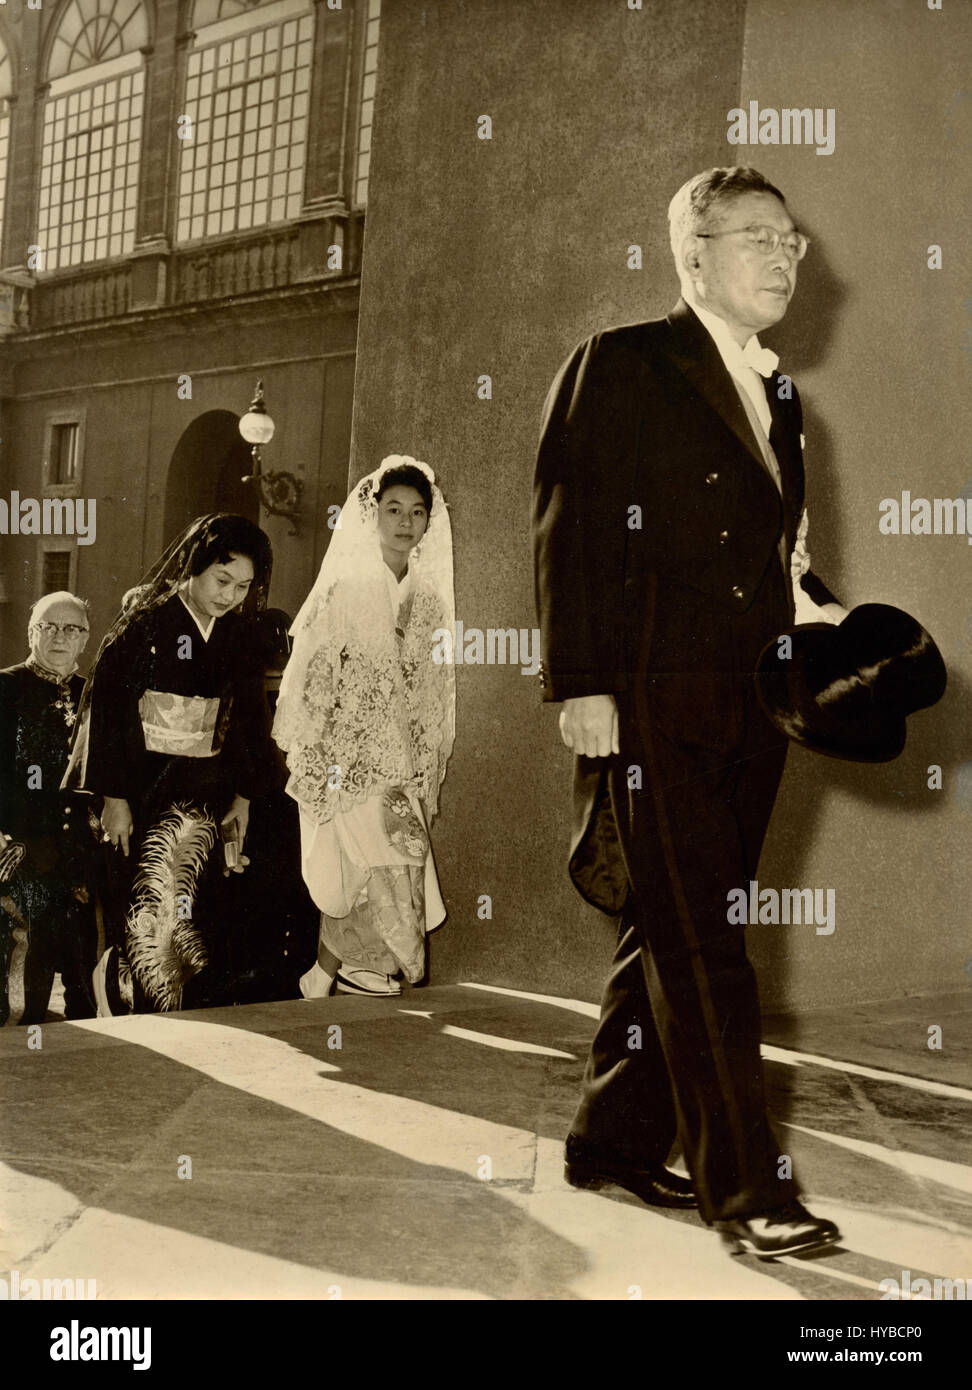 Japonese Prime Minister Hayato Ikeda accompanied by his wife and daughter, Vatican City - Stock Image